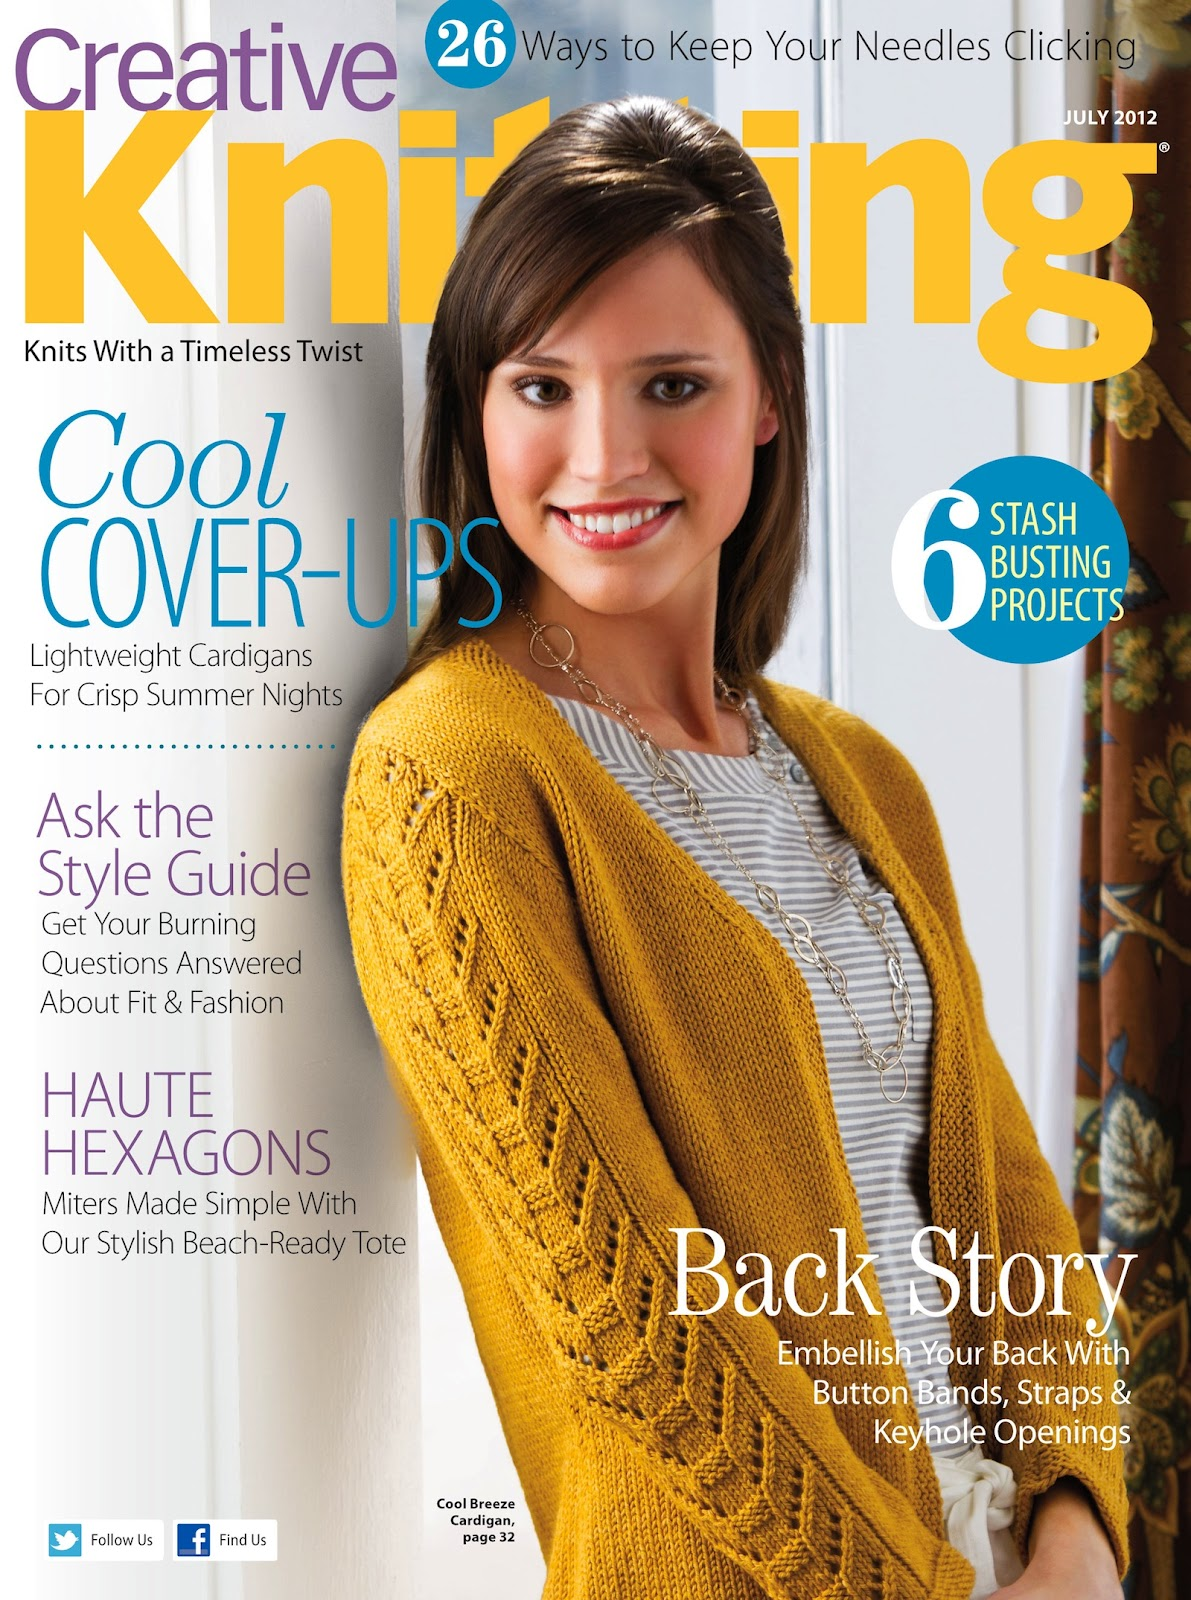 Creative Knitting : neeka knits: Knit Chandelier Necklace in Creative Knitting Magazine